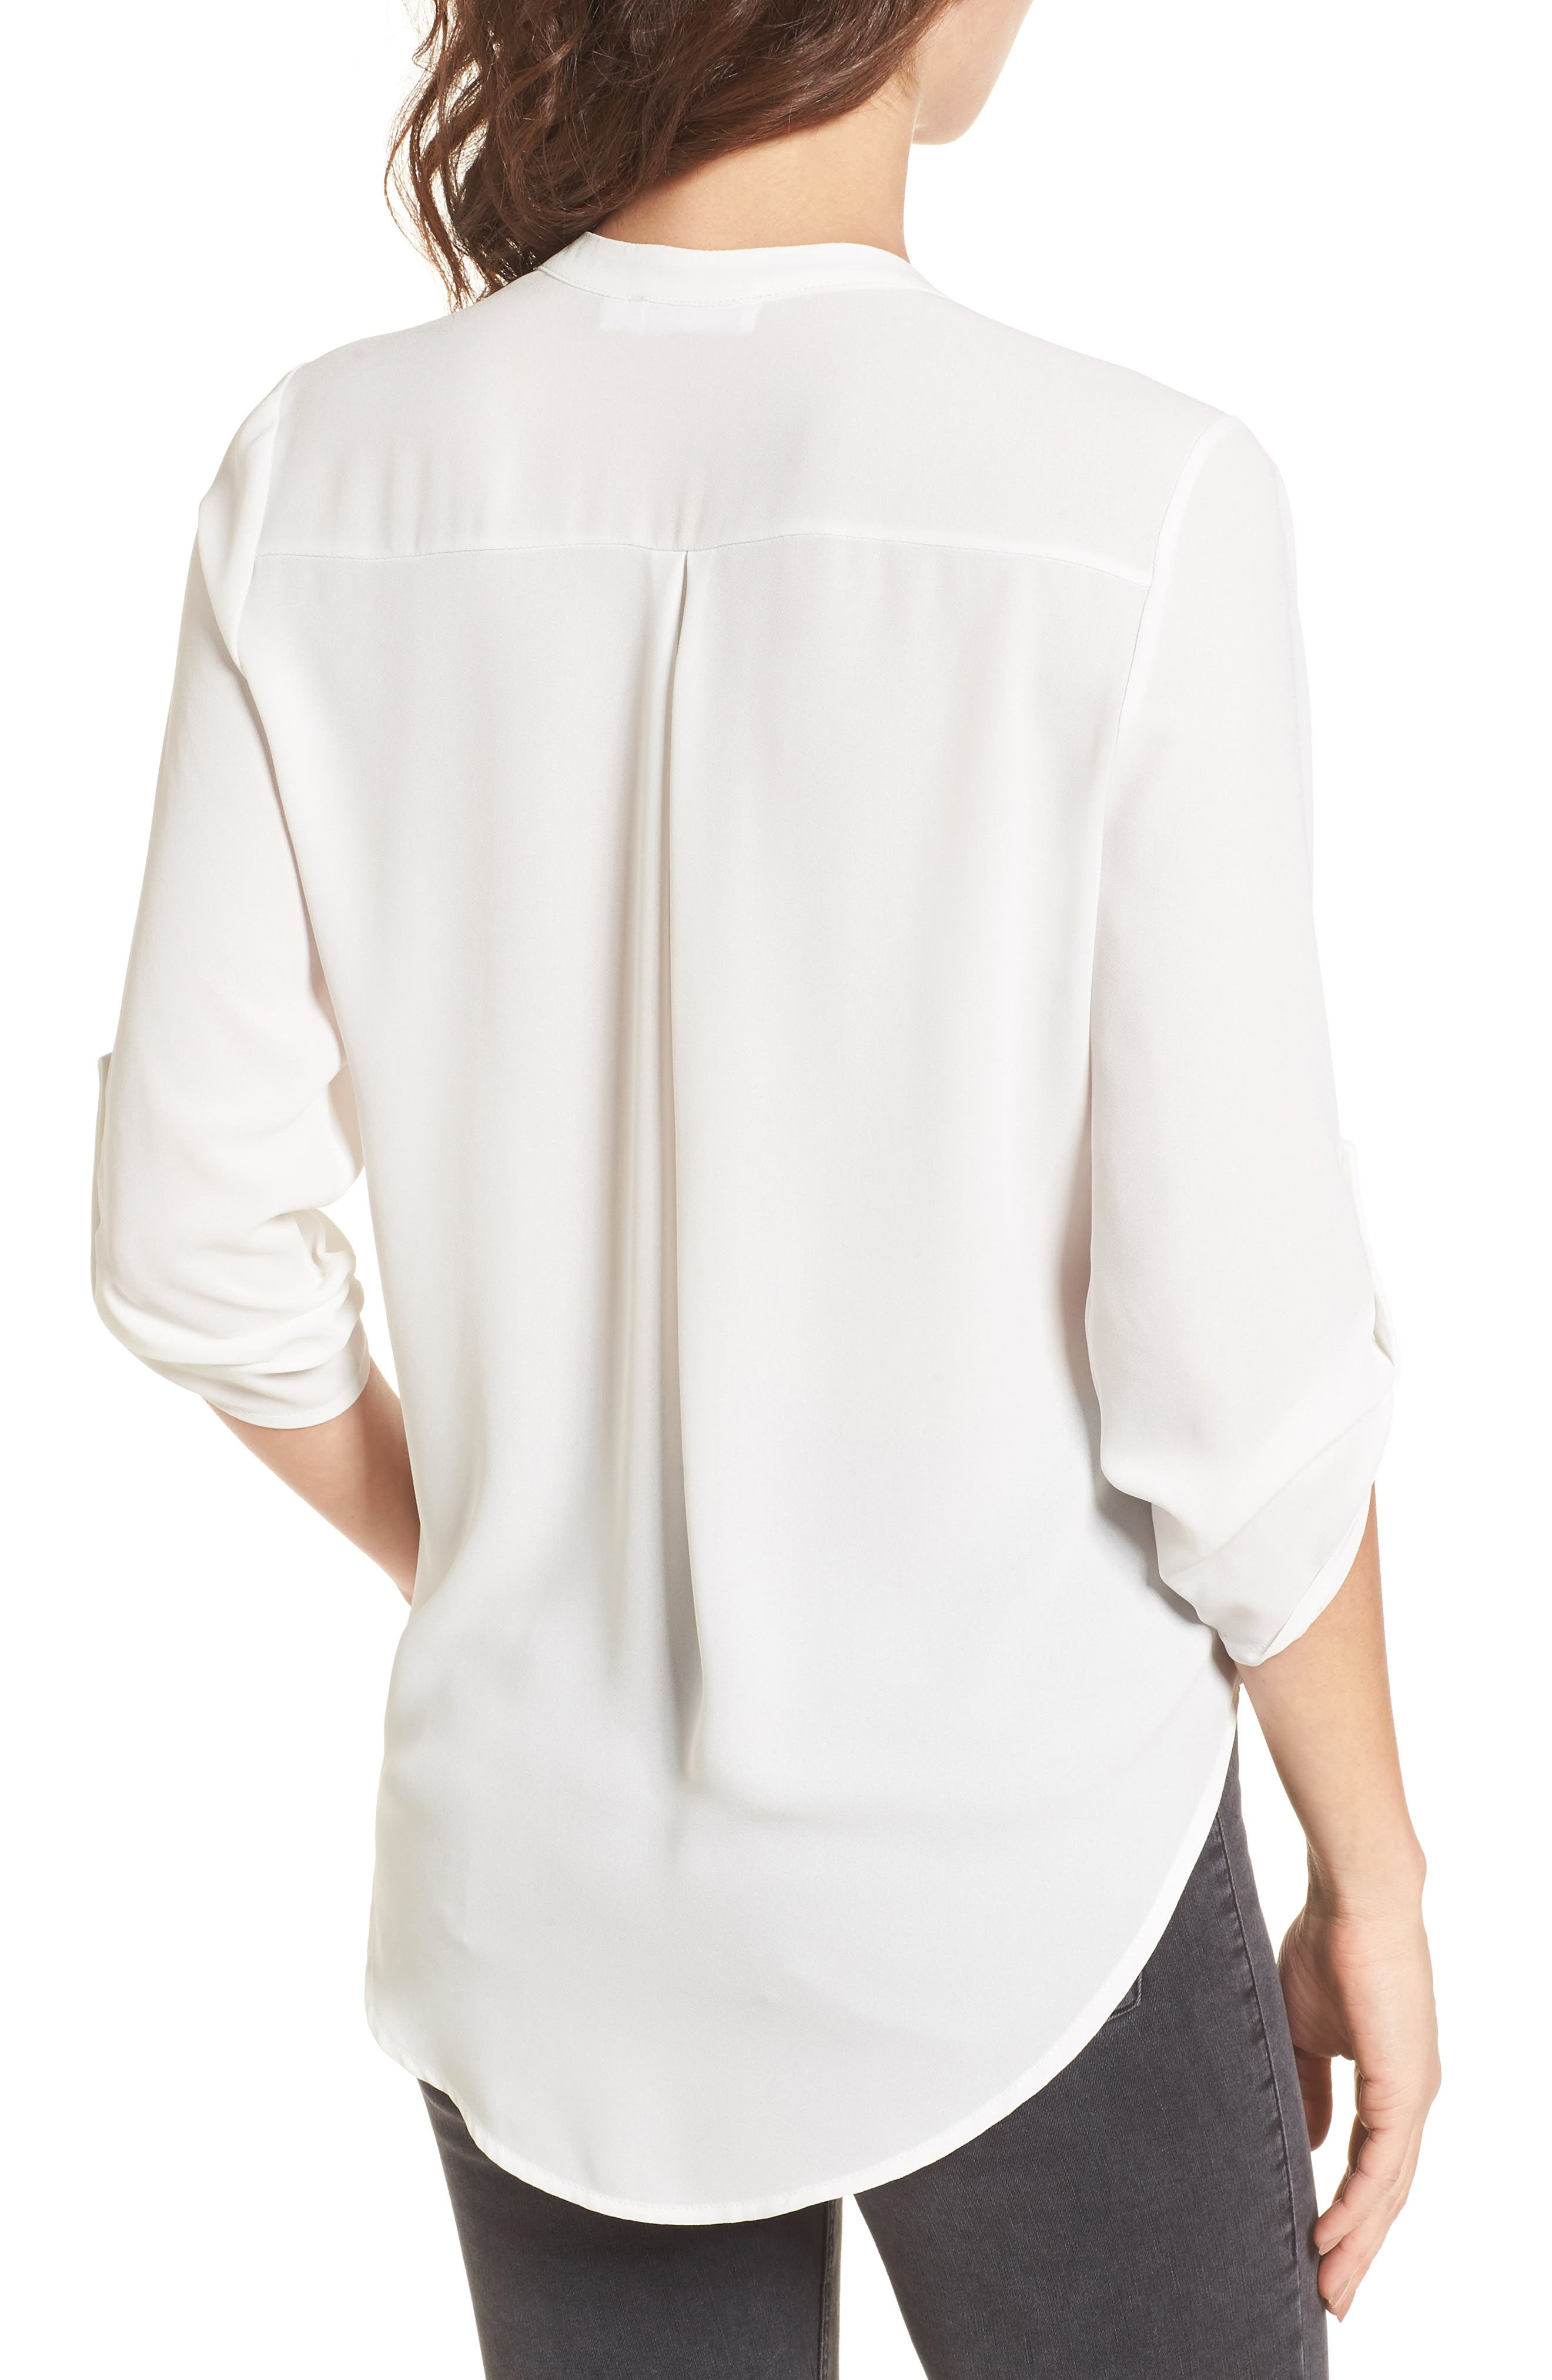 Shirt for Women On Sale, White, Cotton, 2017, 10 12 6 8 Fay